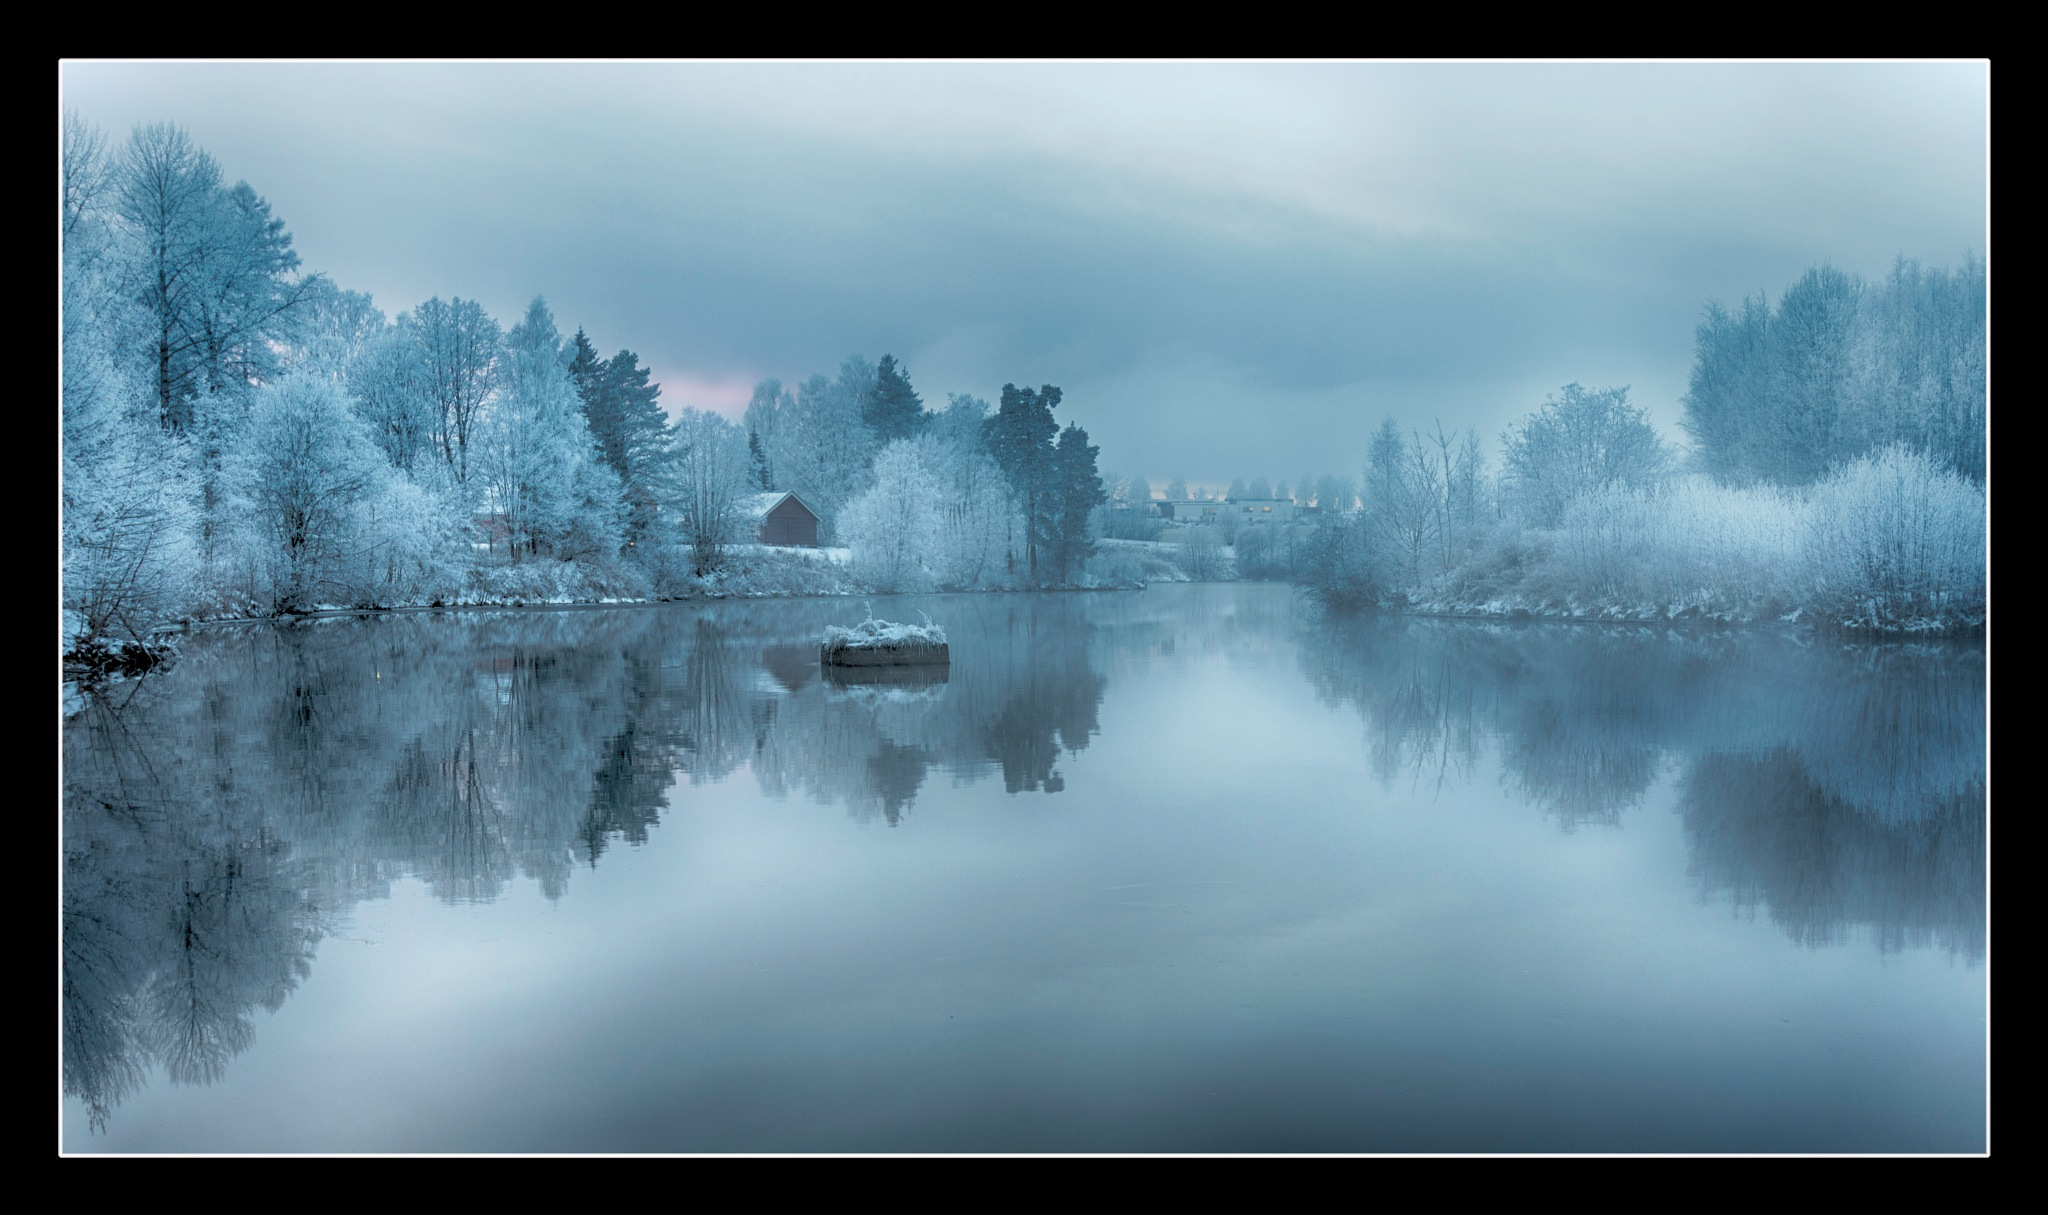 Winter By The River by Kristen Tande